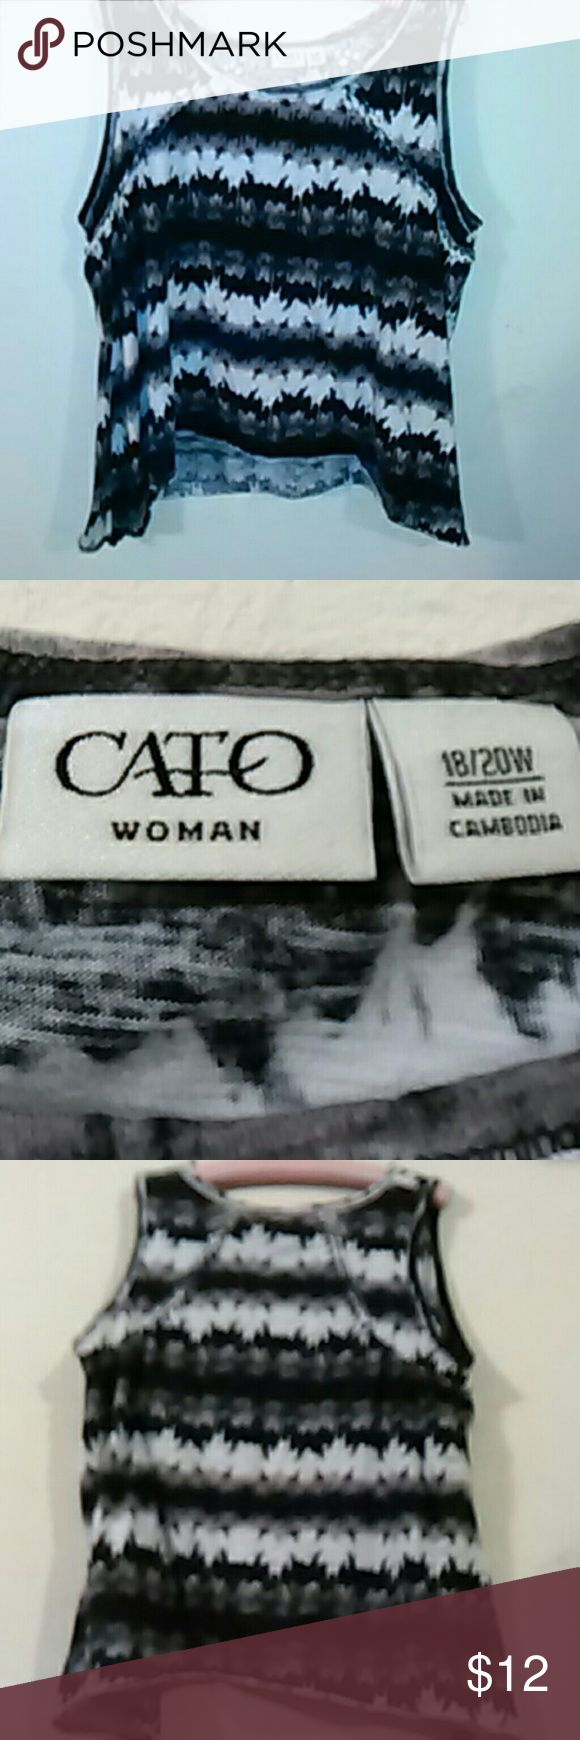 Cato Woman Crop Top Neutral colors ,Browns, Tan, Blacks and Whites. Sleeveless t- shirt. 18/20W    (2) Cato Tops Crop Tops